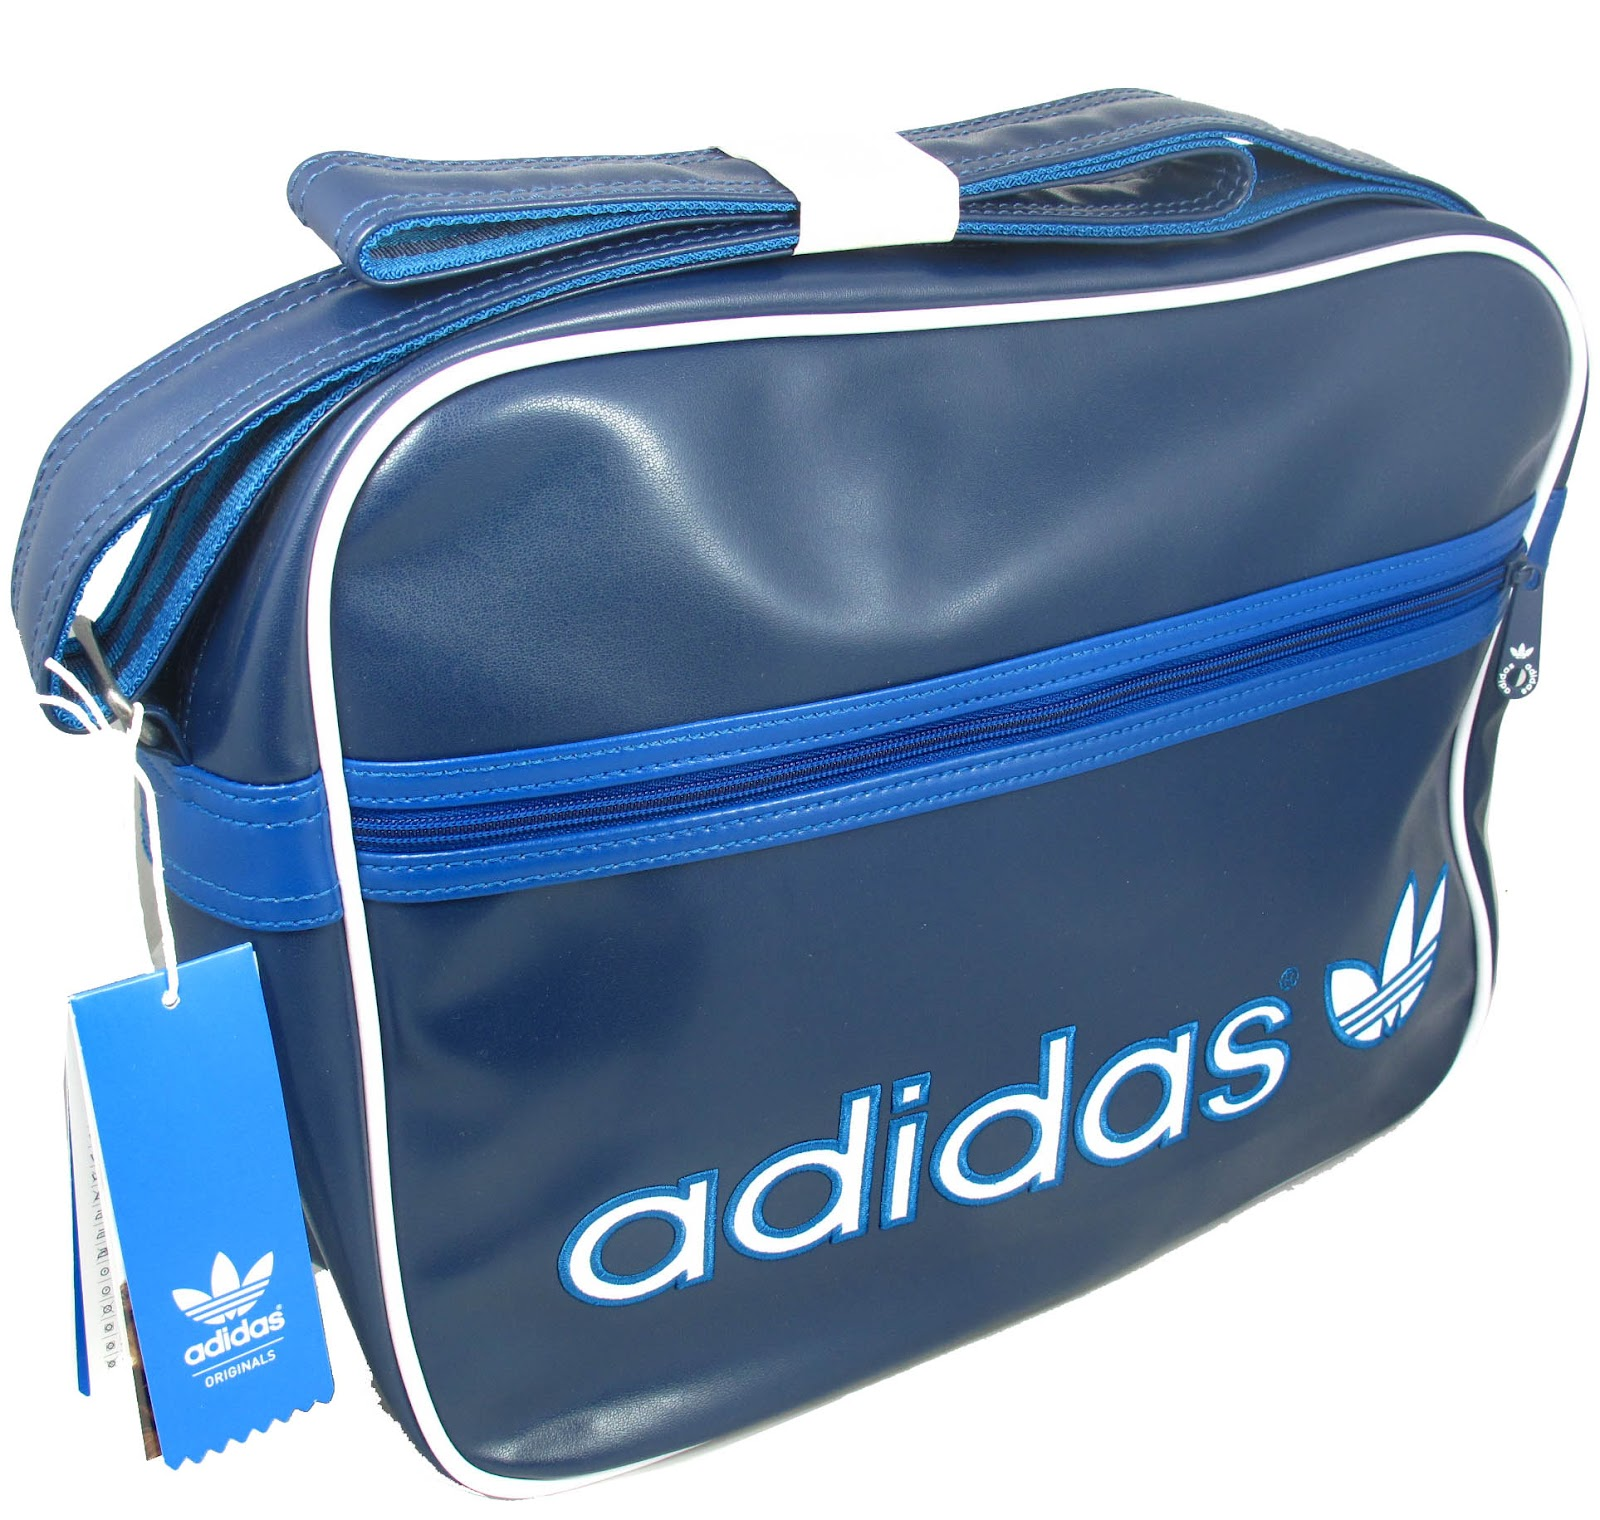 581fab3780a Adidas Airline Bags NEW colours. Some amazing old school ...